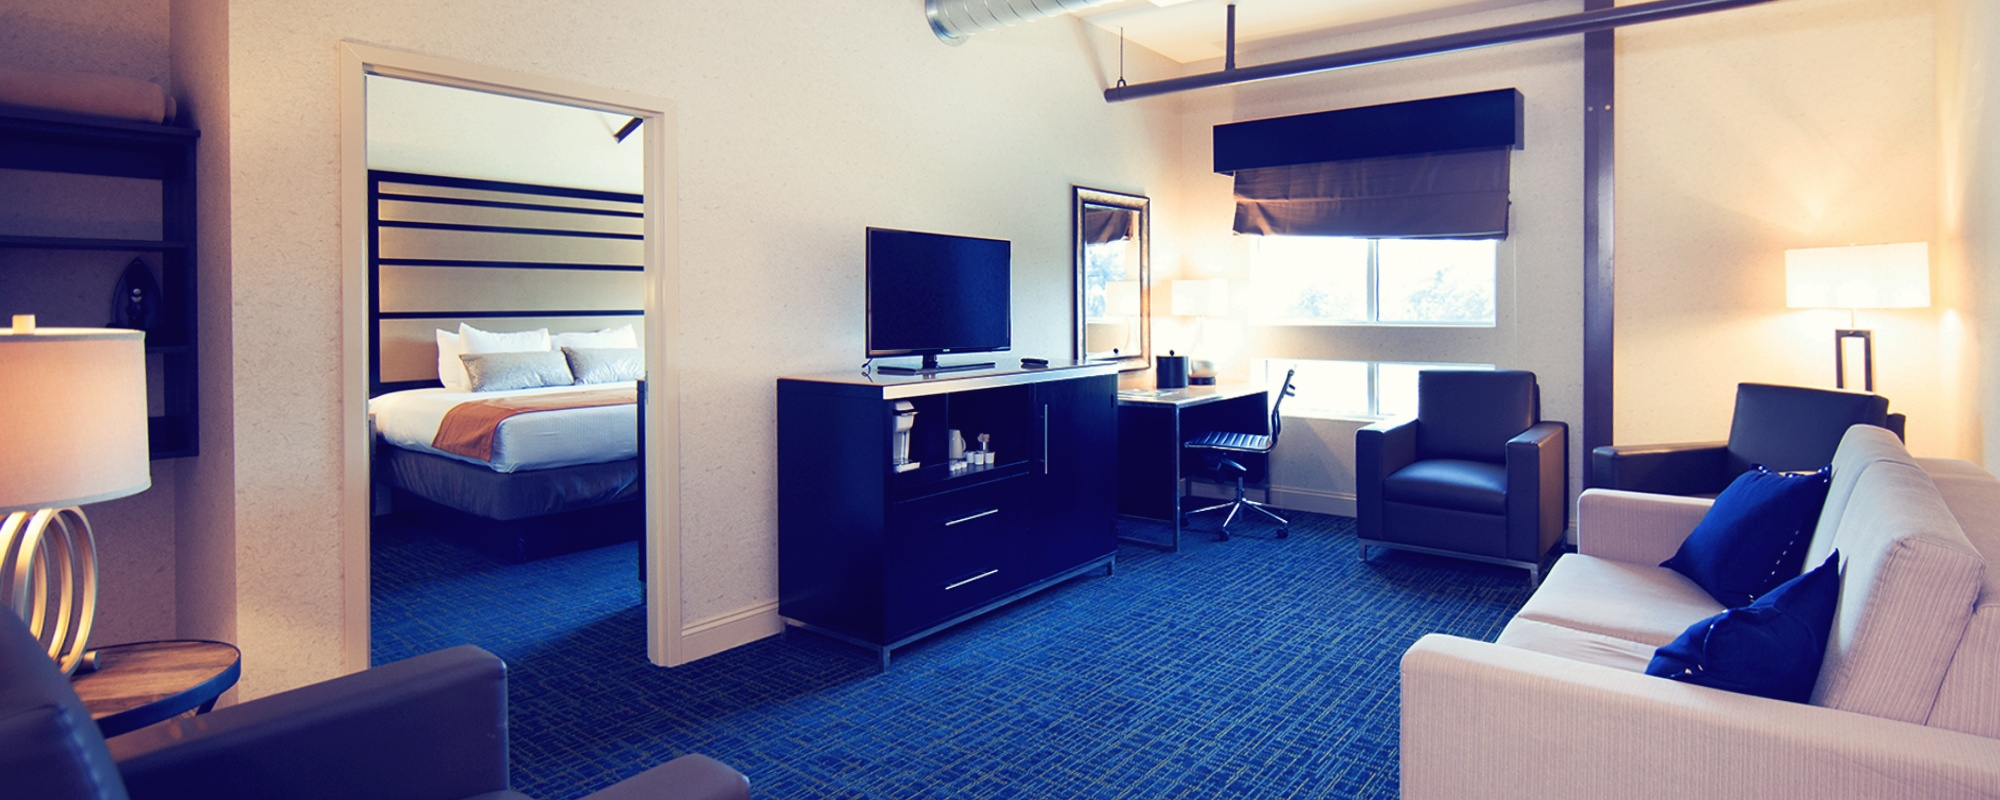 room suites at Warehouse Hotel